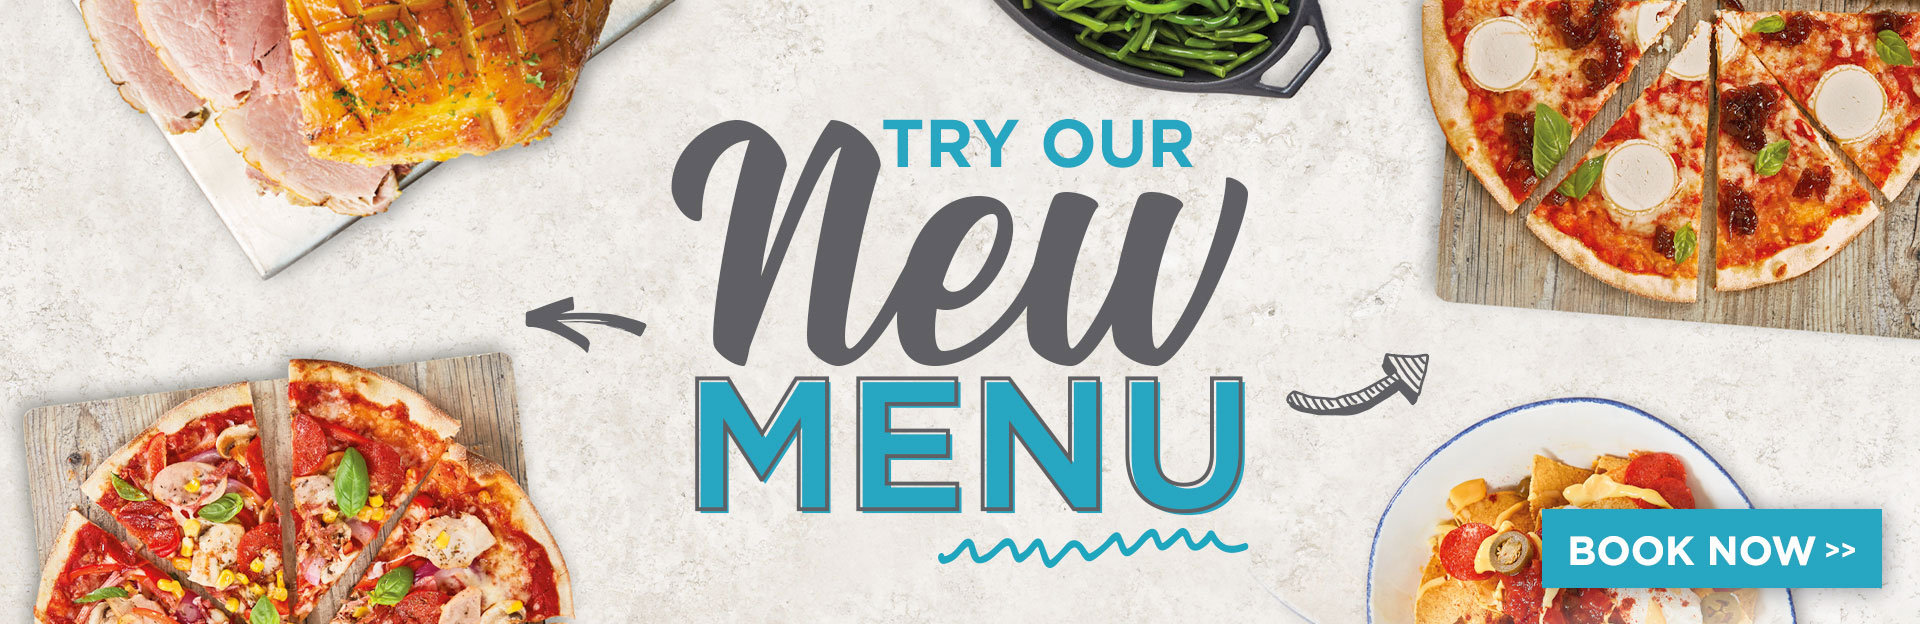 New menu at Crosspool Tavern